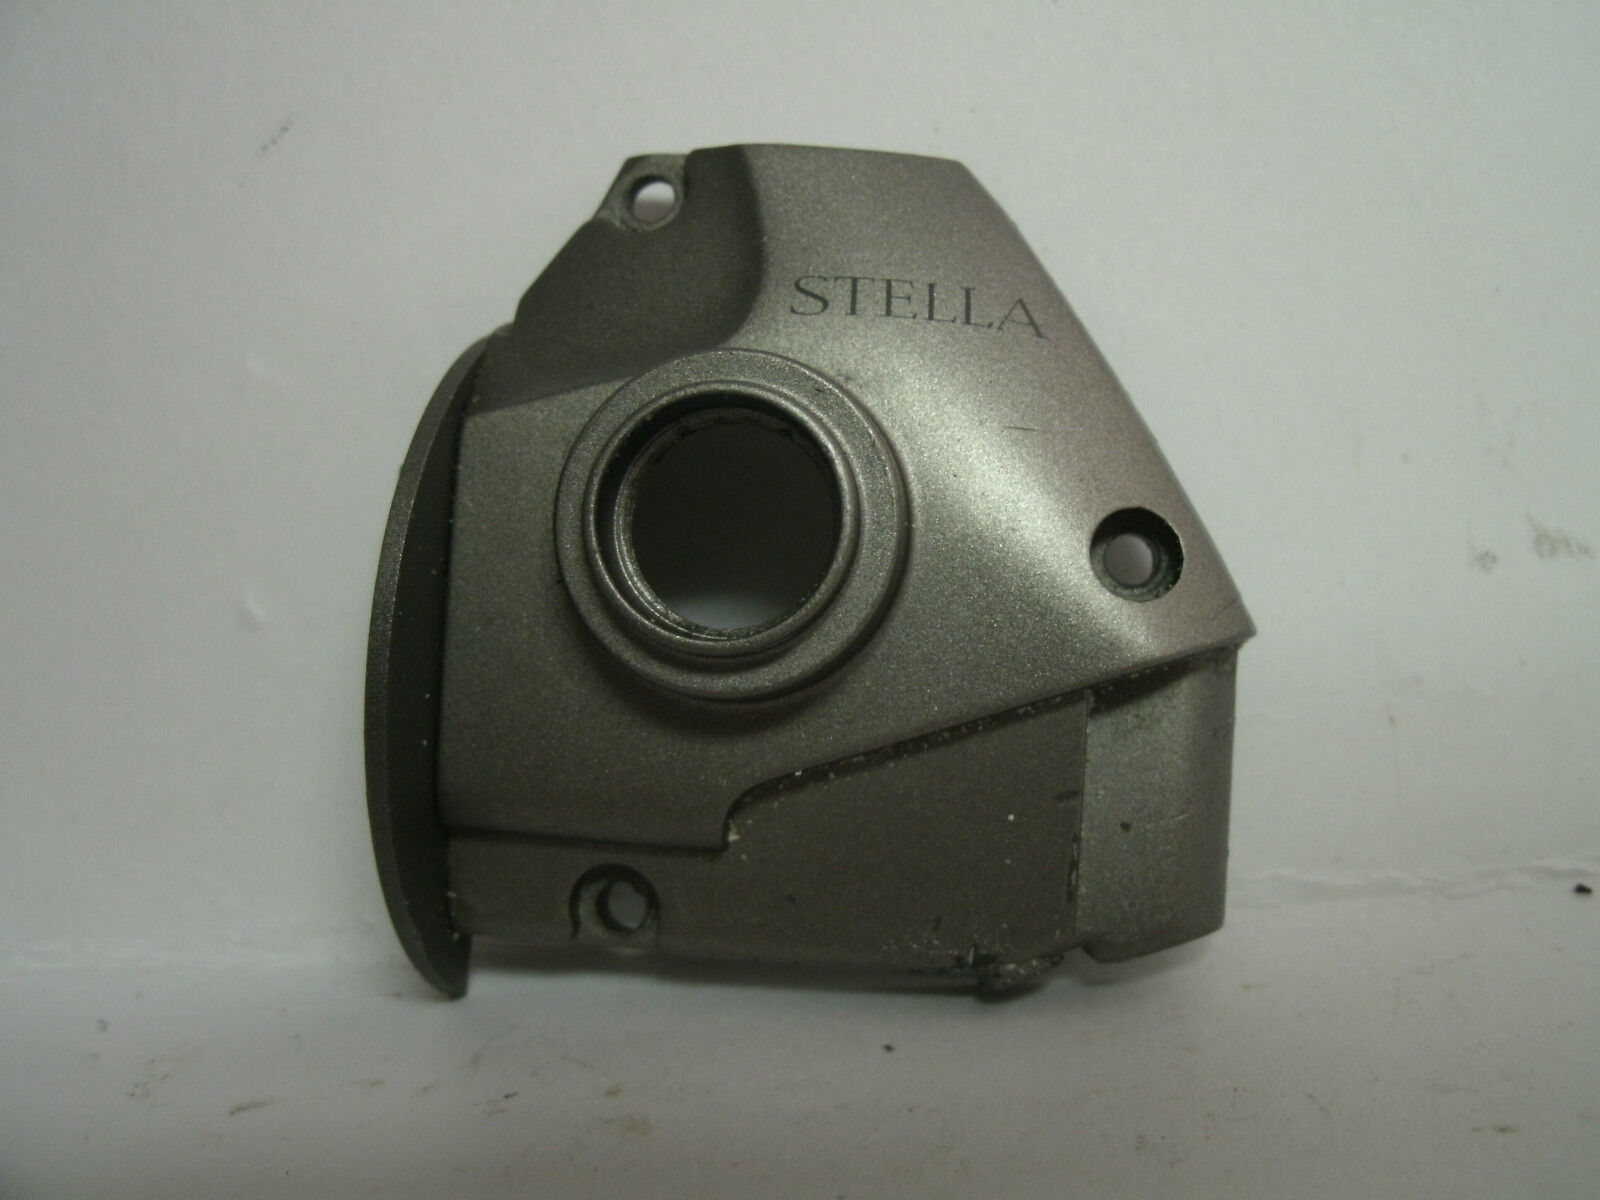 USED SHIMANO REEL PART - Stella 4000F Spinning Reel - Side Cover